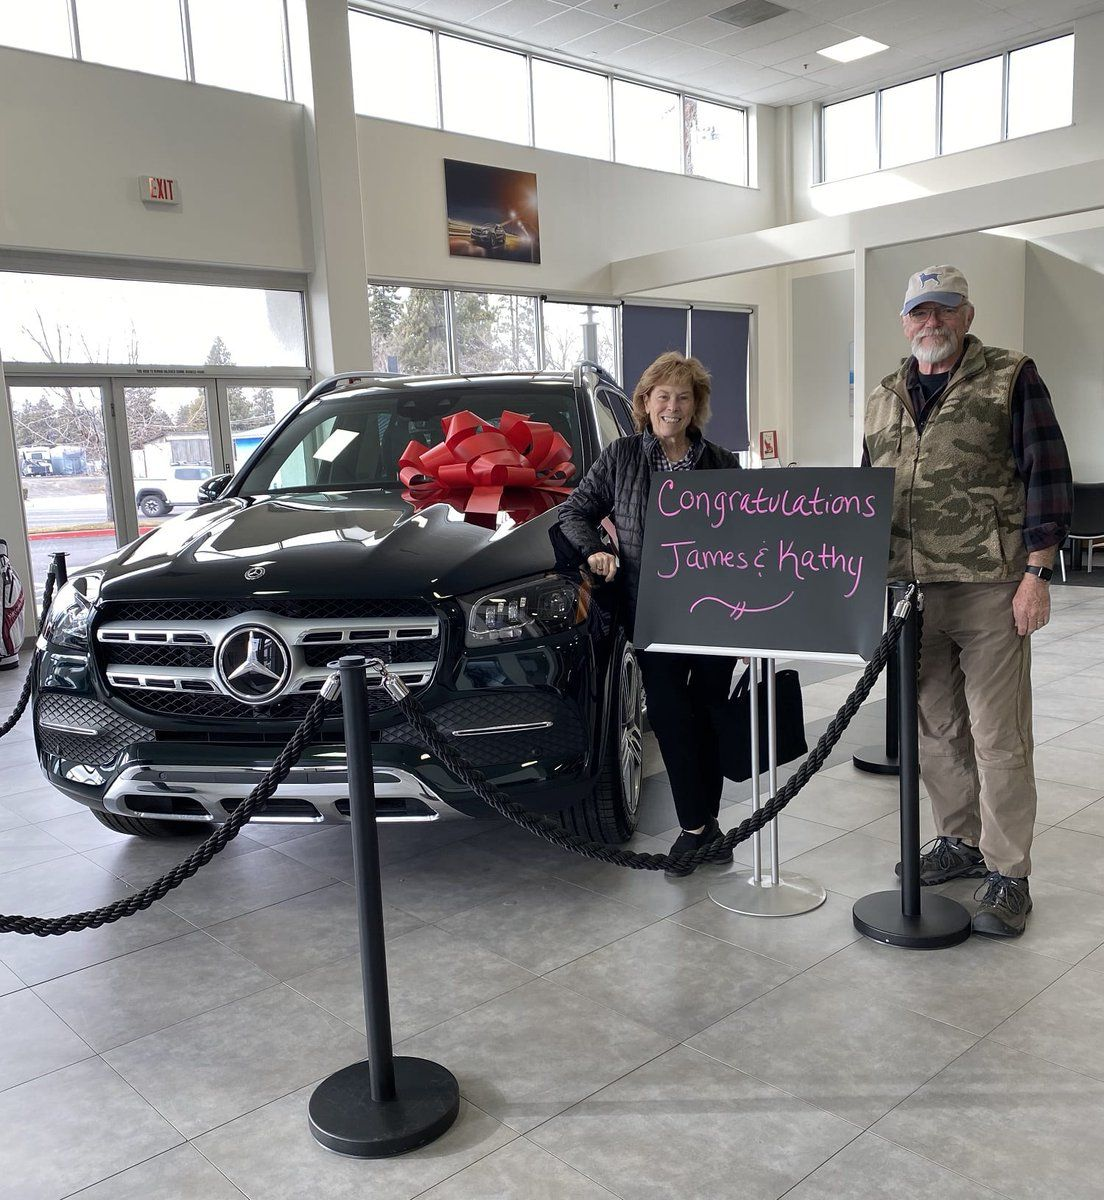 James And Kathy Dennis Our Compliments On Finding Such A Beautiful New 2020 Mercedes Benz Gls450 At M Mercedes Benz Service Mercedes Benz Mercedes Benz Parts